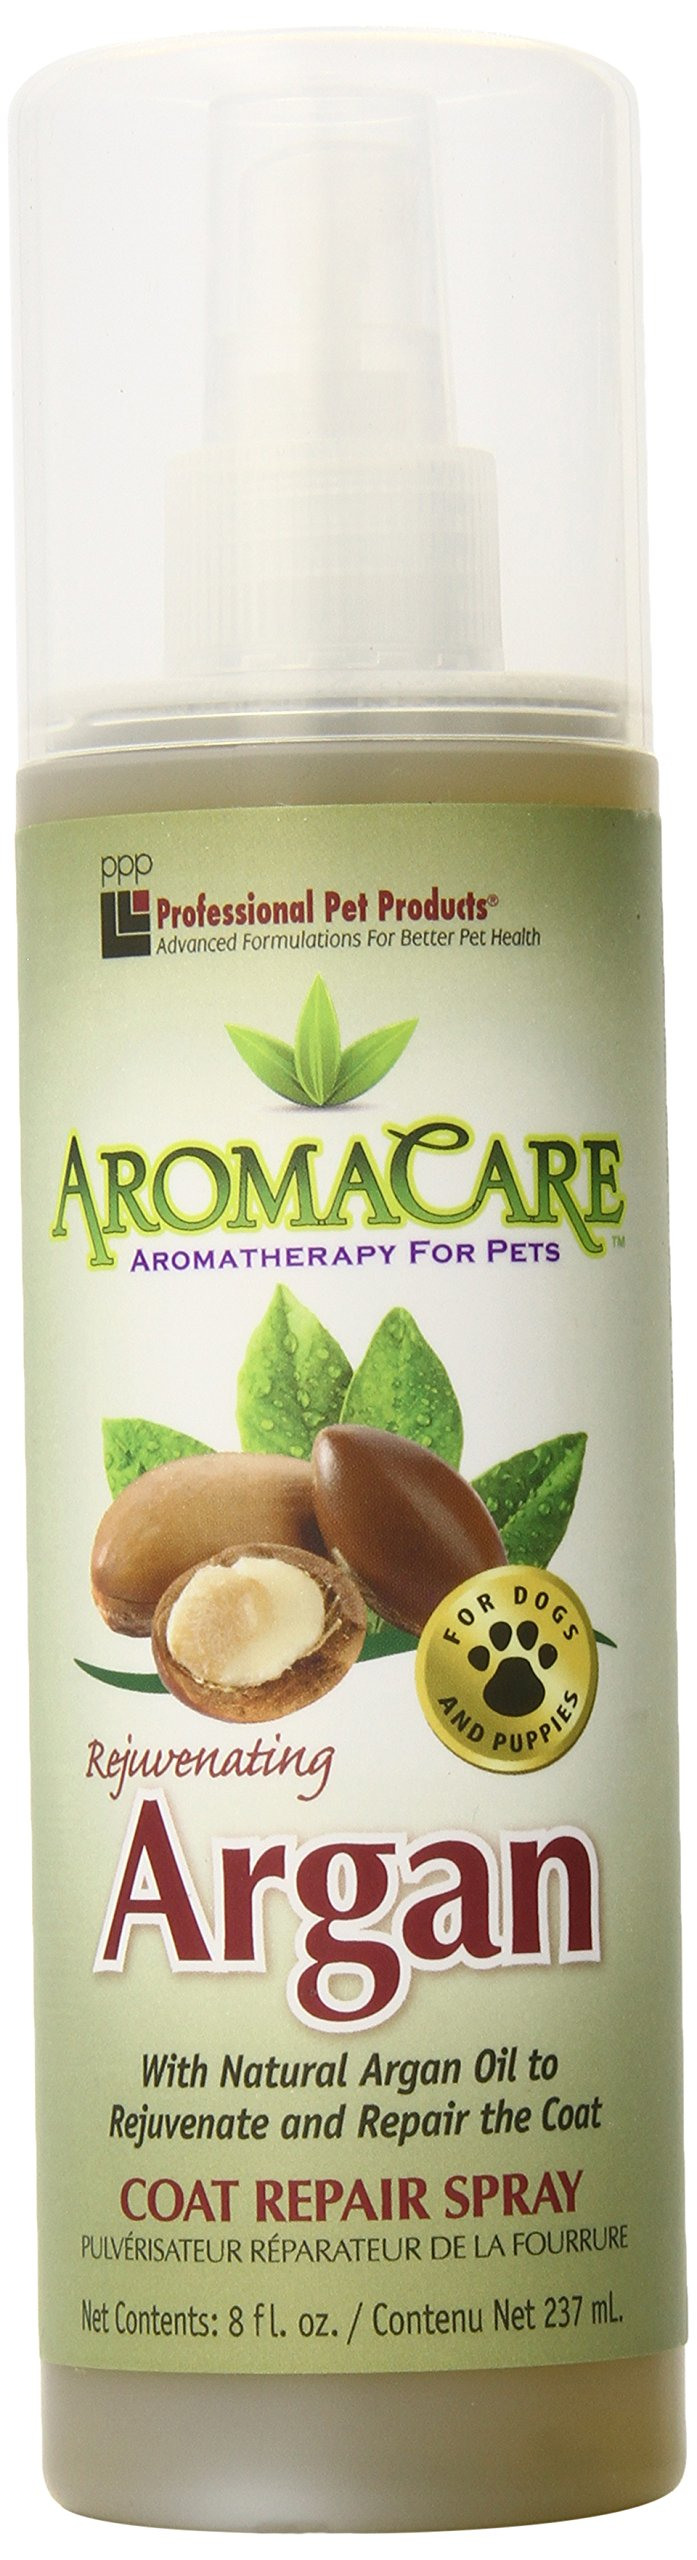 PPP Pet Aroma Care Rejuvenating Argon Spray, 8-Ounce by PPP